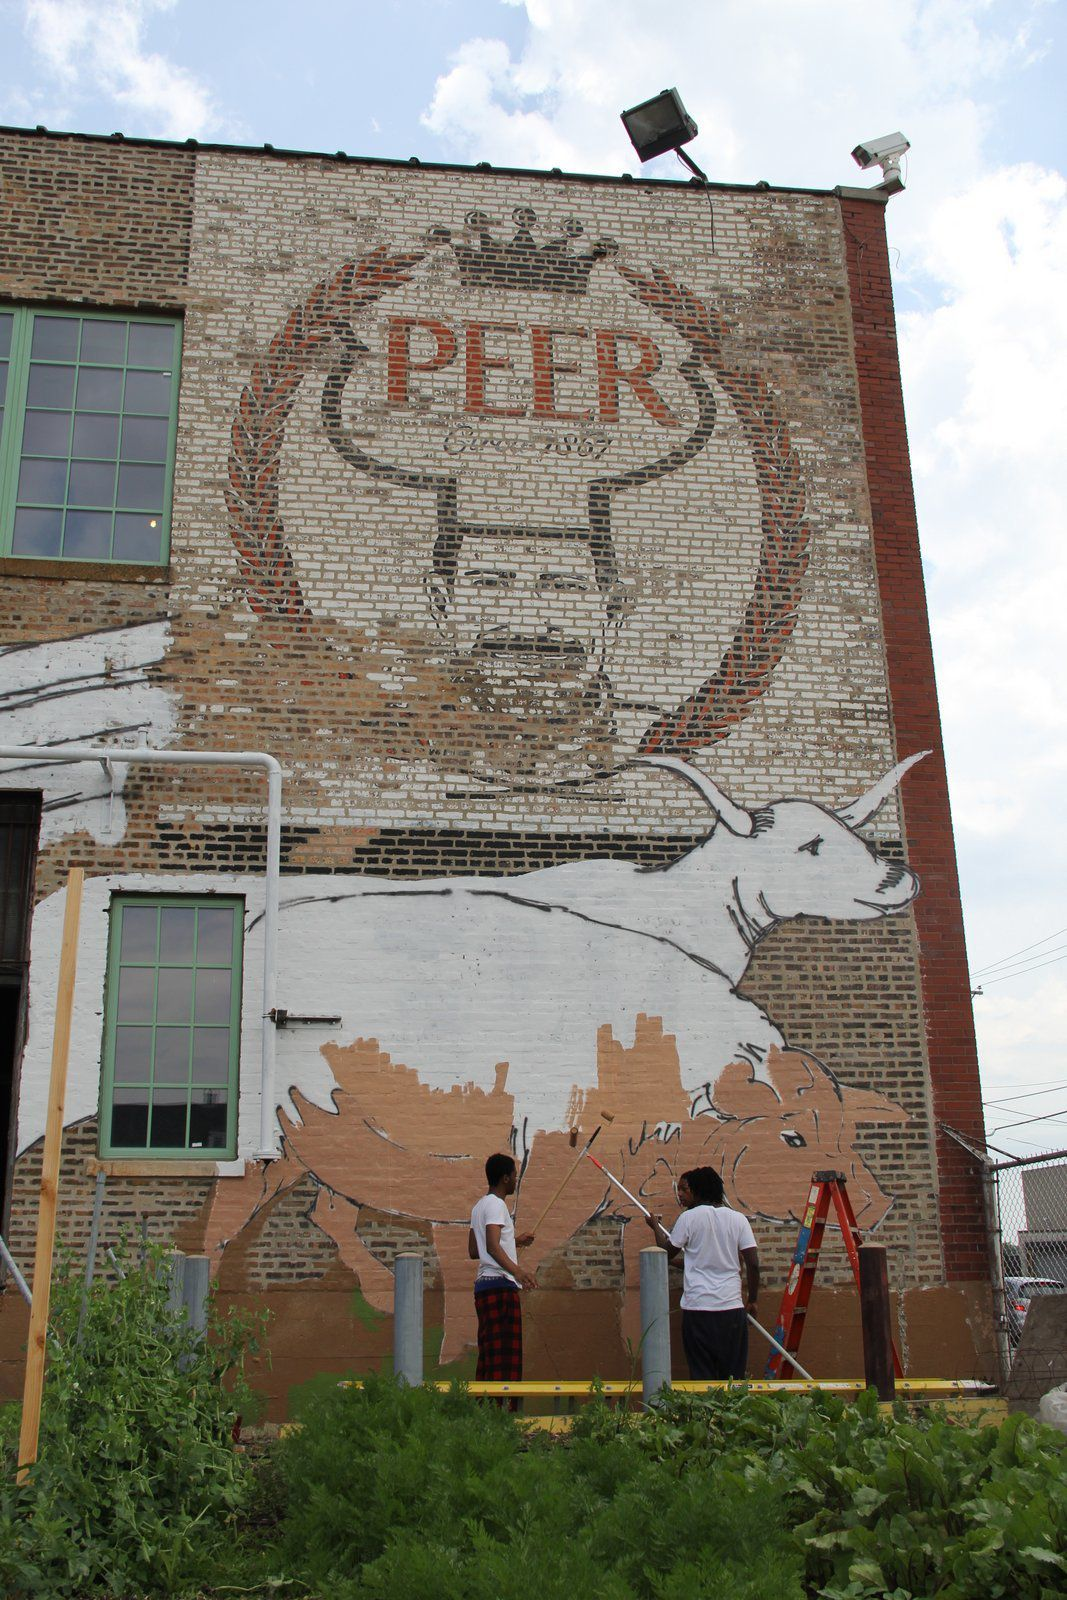 The mural at 1400 W. 46th St., shown here while in progress, incorporates the building's original Peer Foods logo.